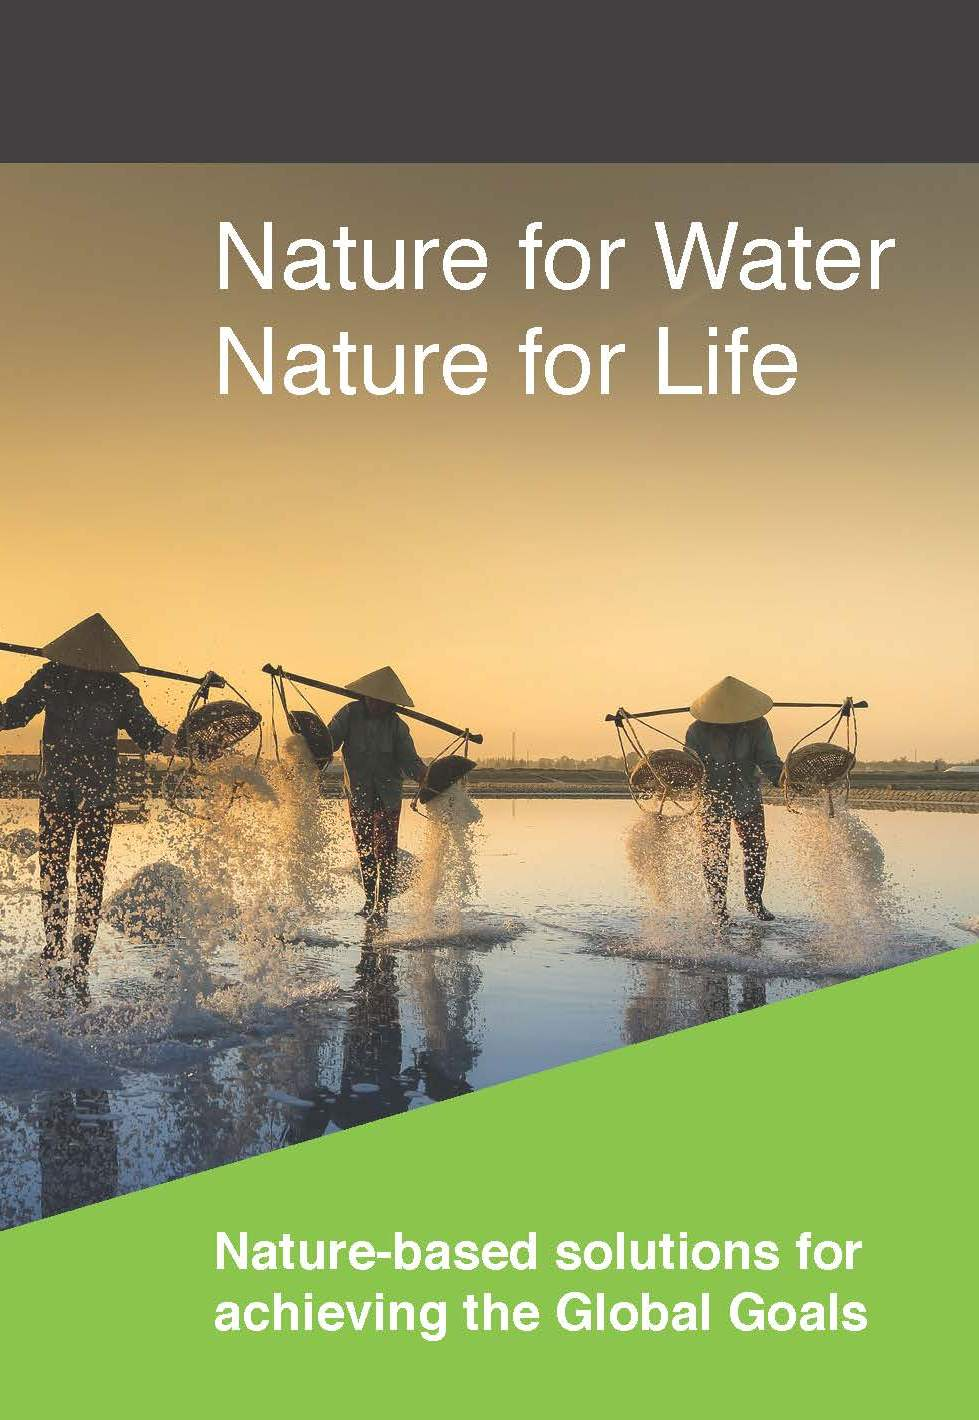 Nature for Water, Nature for Life: Nature-based solutions for achieving the Global Goals